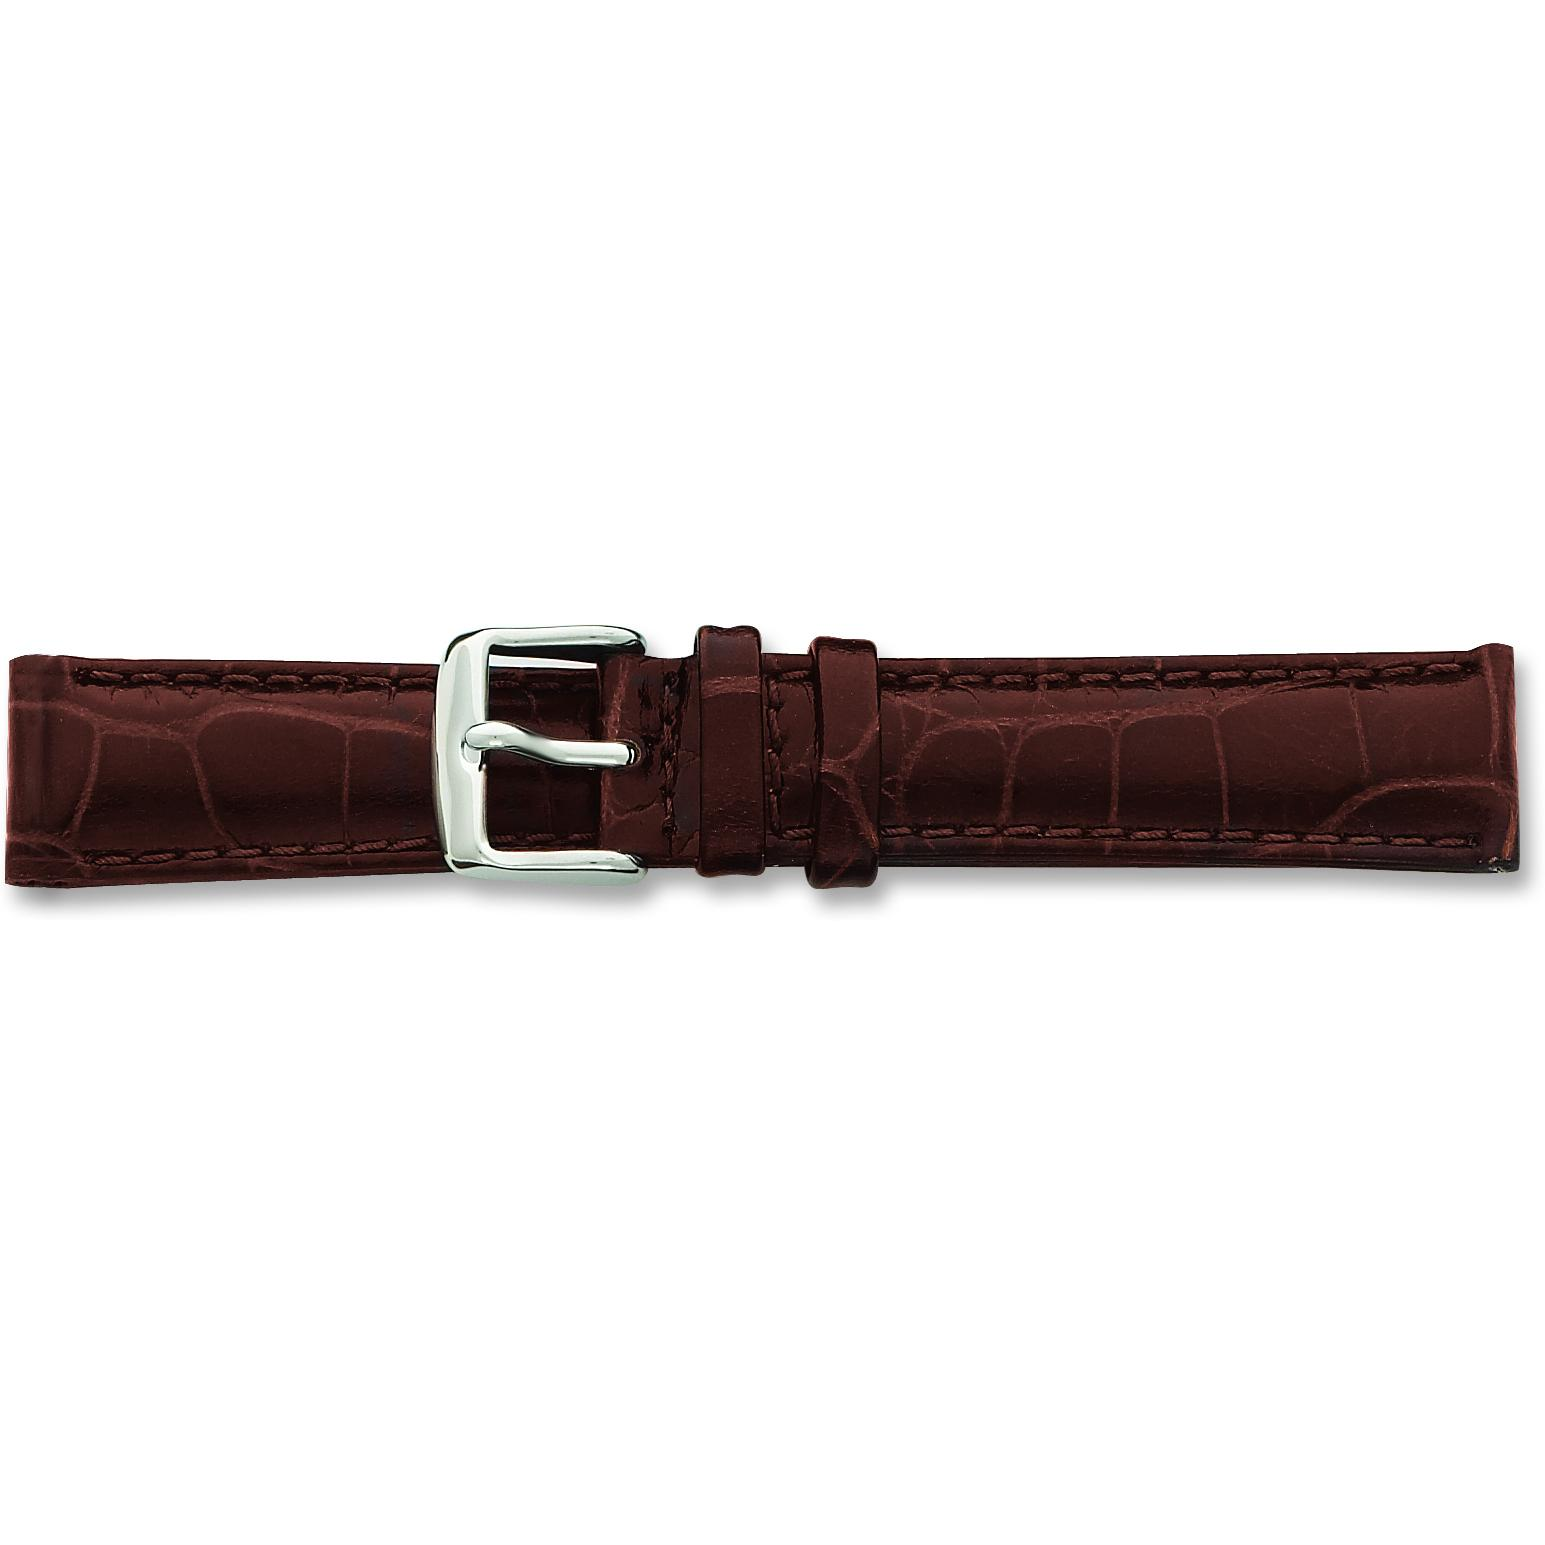 Findingking de Beer Brown Crocodile Grain Leather Watch Band 24mm at Sears.com